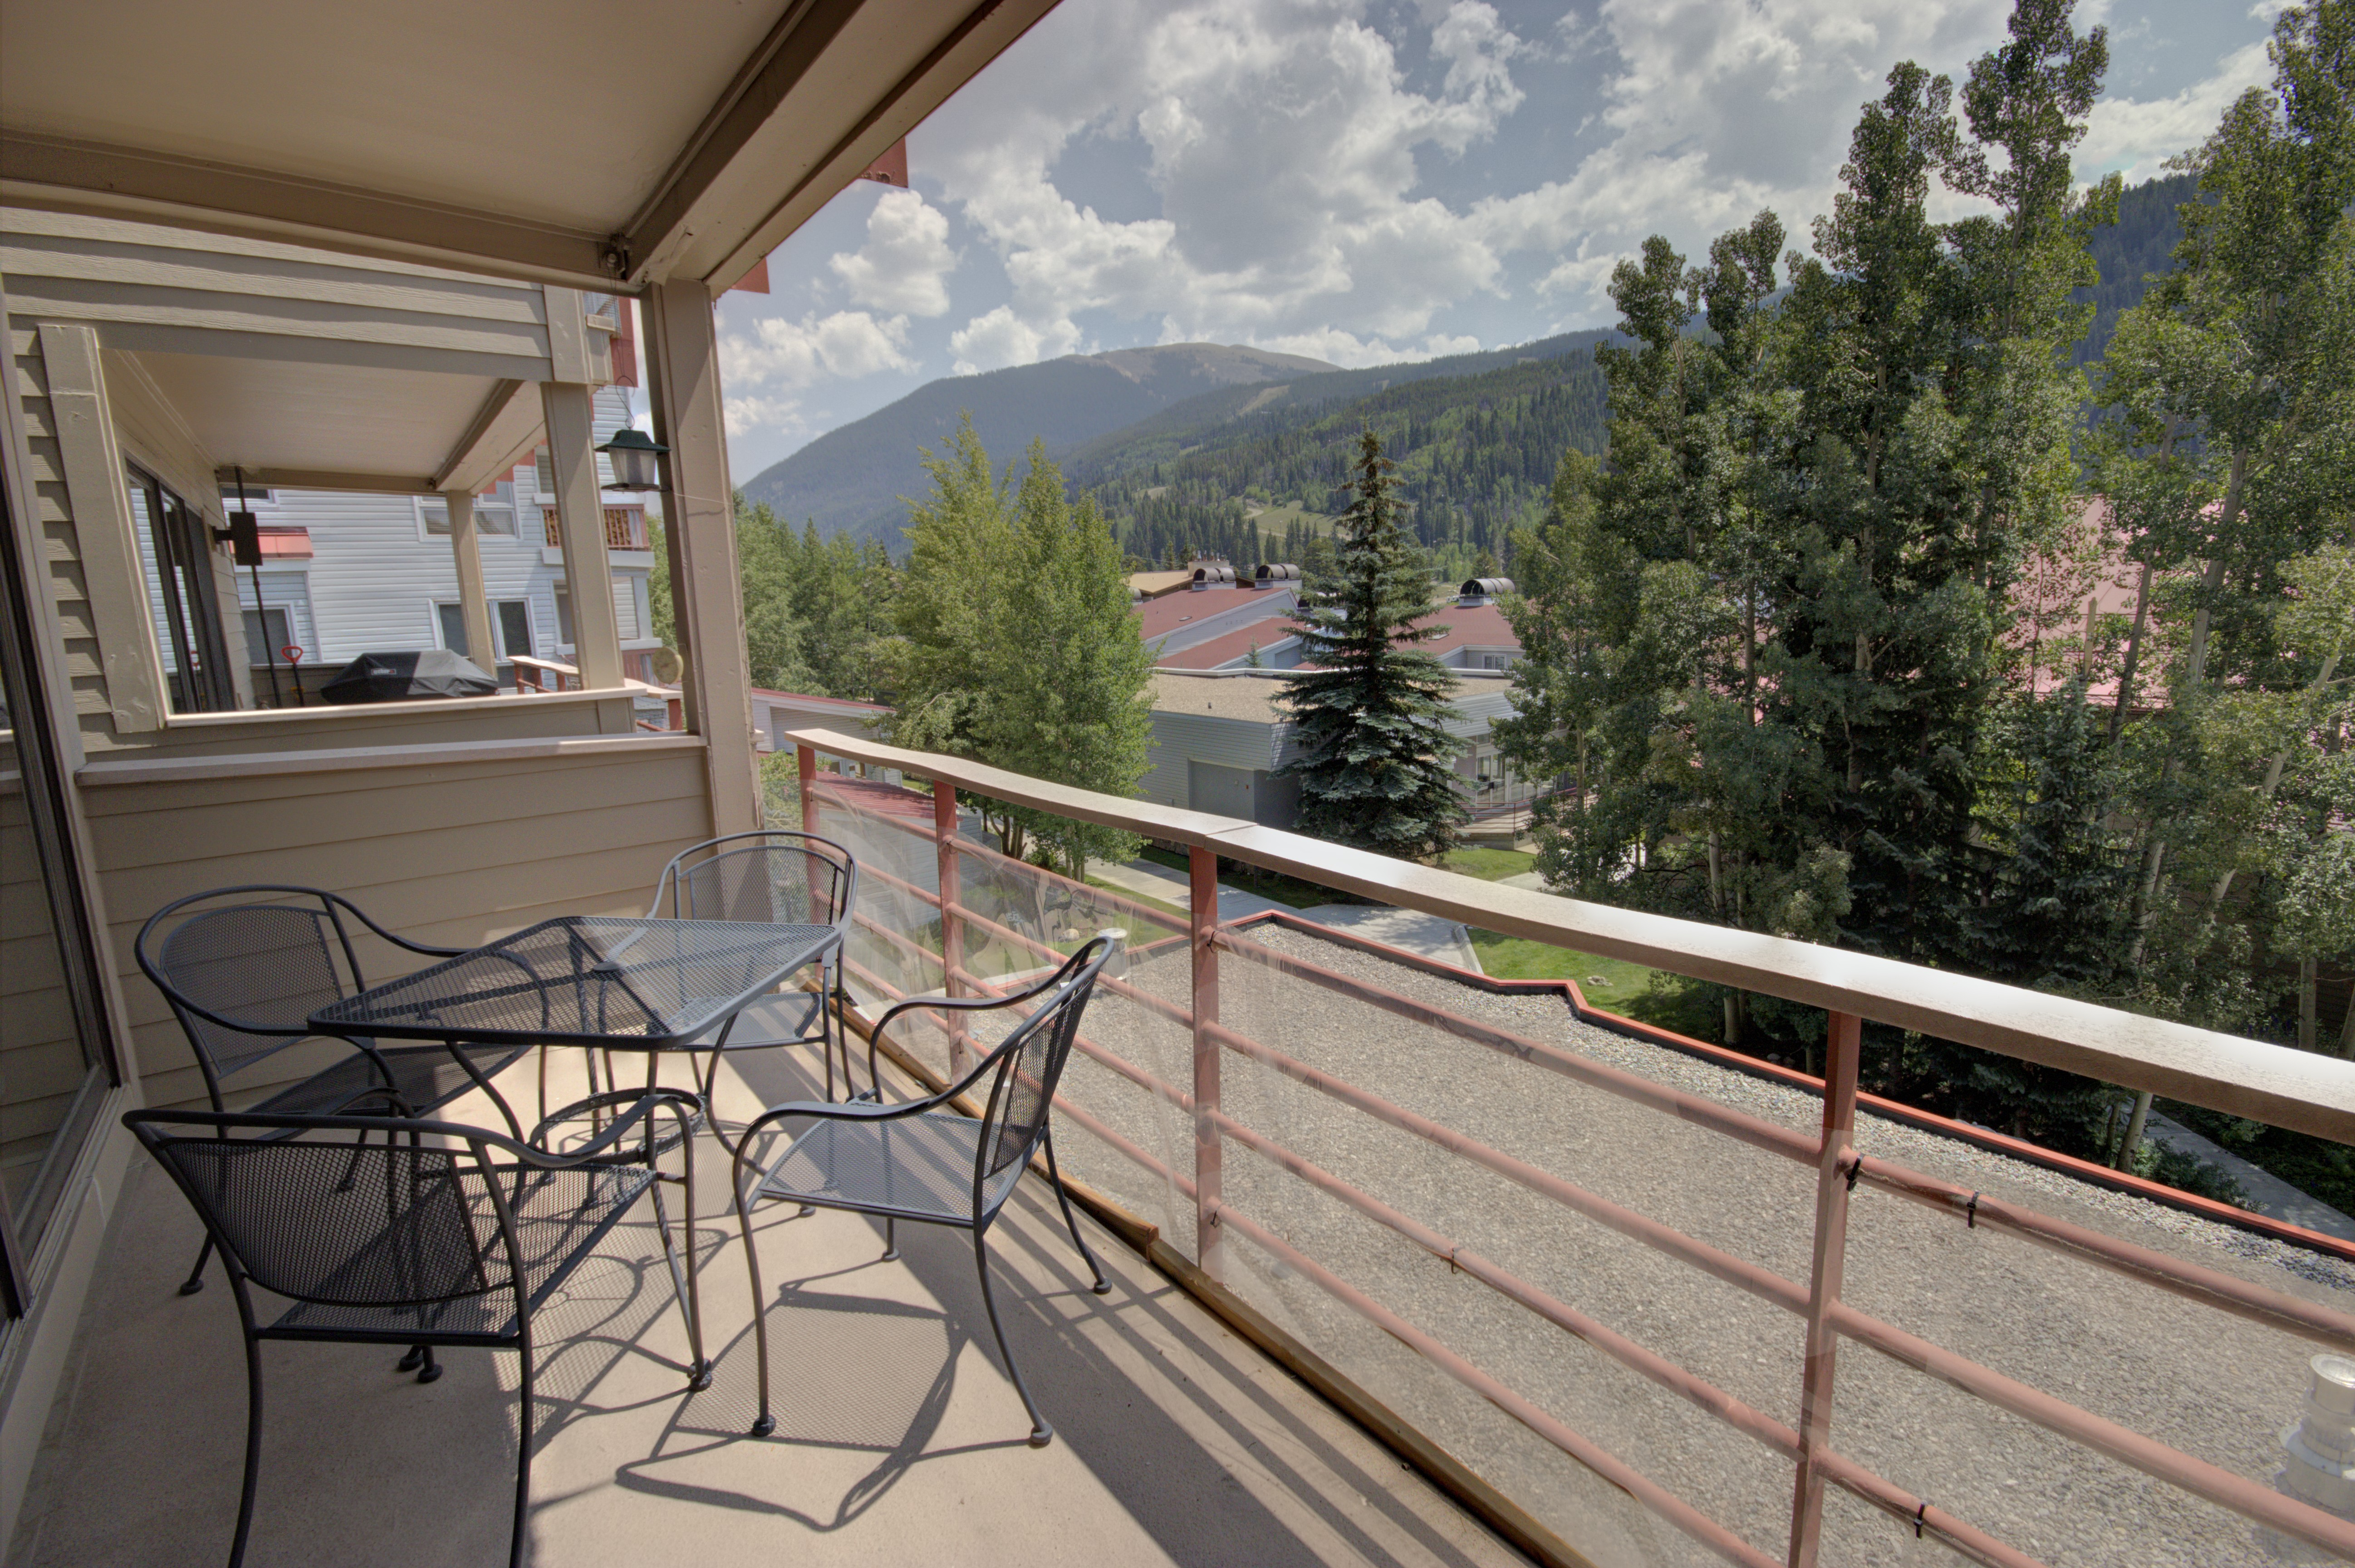 Balcony with spectacular views